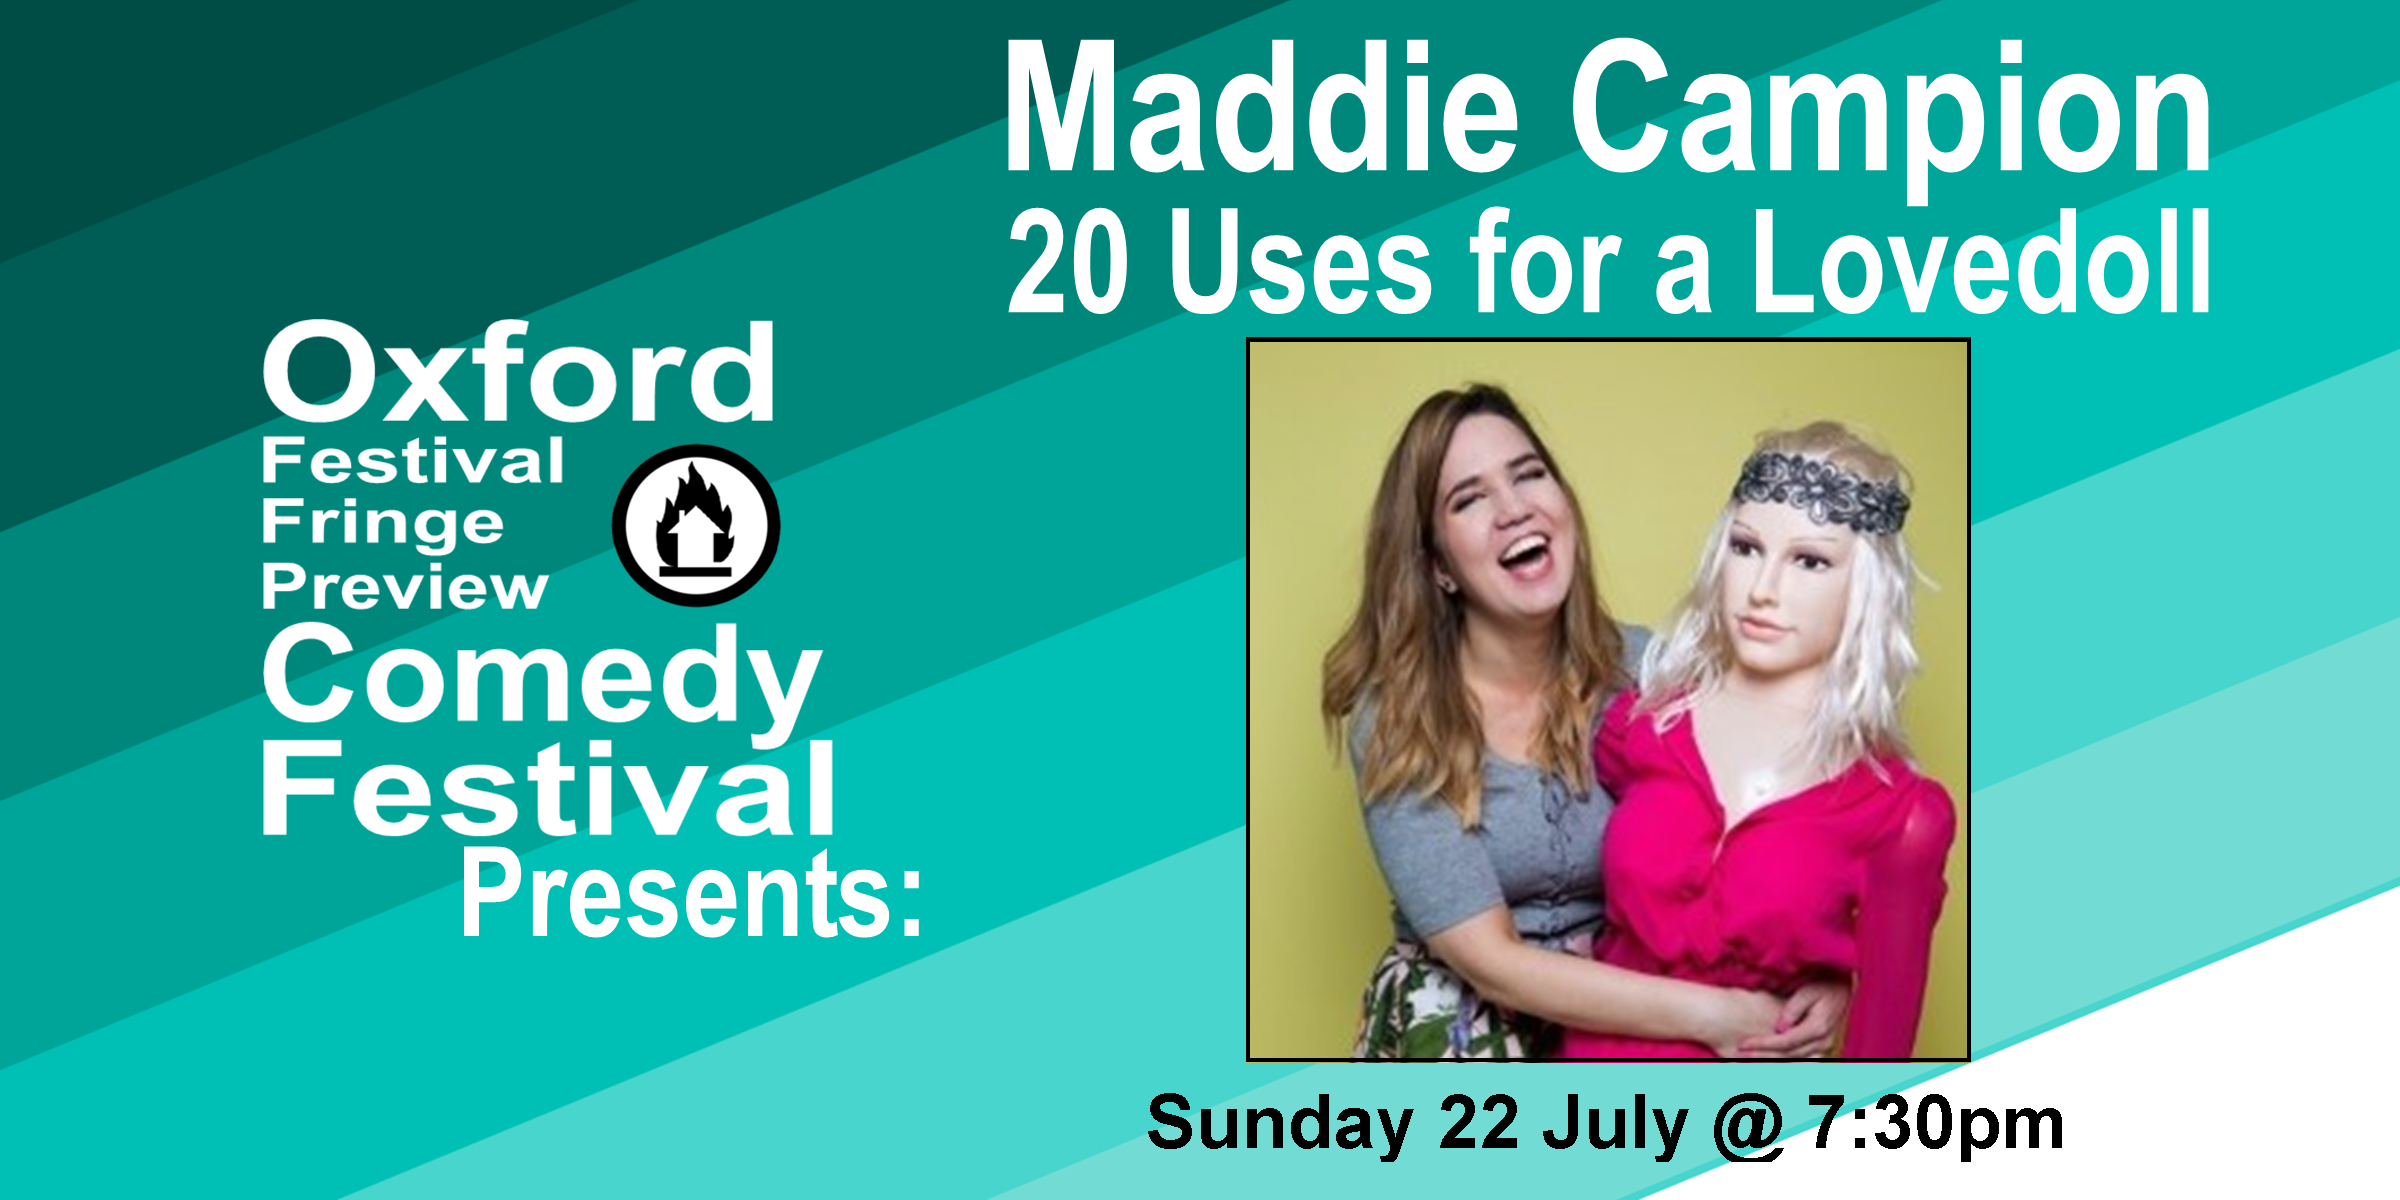 Maddie Campion has always wanted to be in a double act. LD, a lovedoll, is tired of being seen as a sex object. Together they join forces to form the first ever human-lovedoll comedy duo... but not everything goes to plan. Maddie Campion: 'Effortlessly delivers... with punchlines that come from leftfield' (Kate Stone, Funny Women). LD: 'Easily inflates' (Amazon user).  Doors at 7pm /Show at 7:30pm  60 minutes    Get Your Tickets Here!